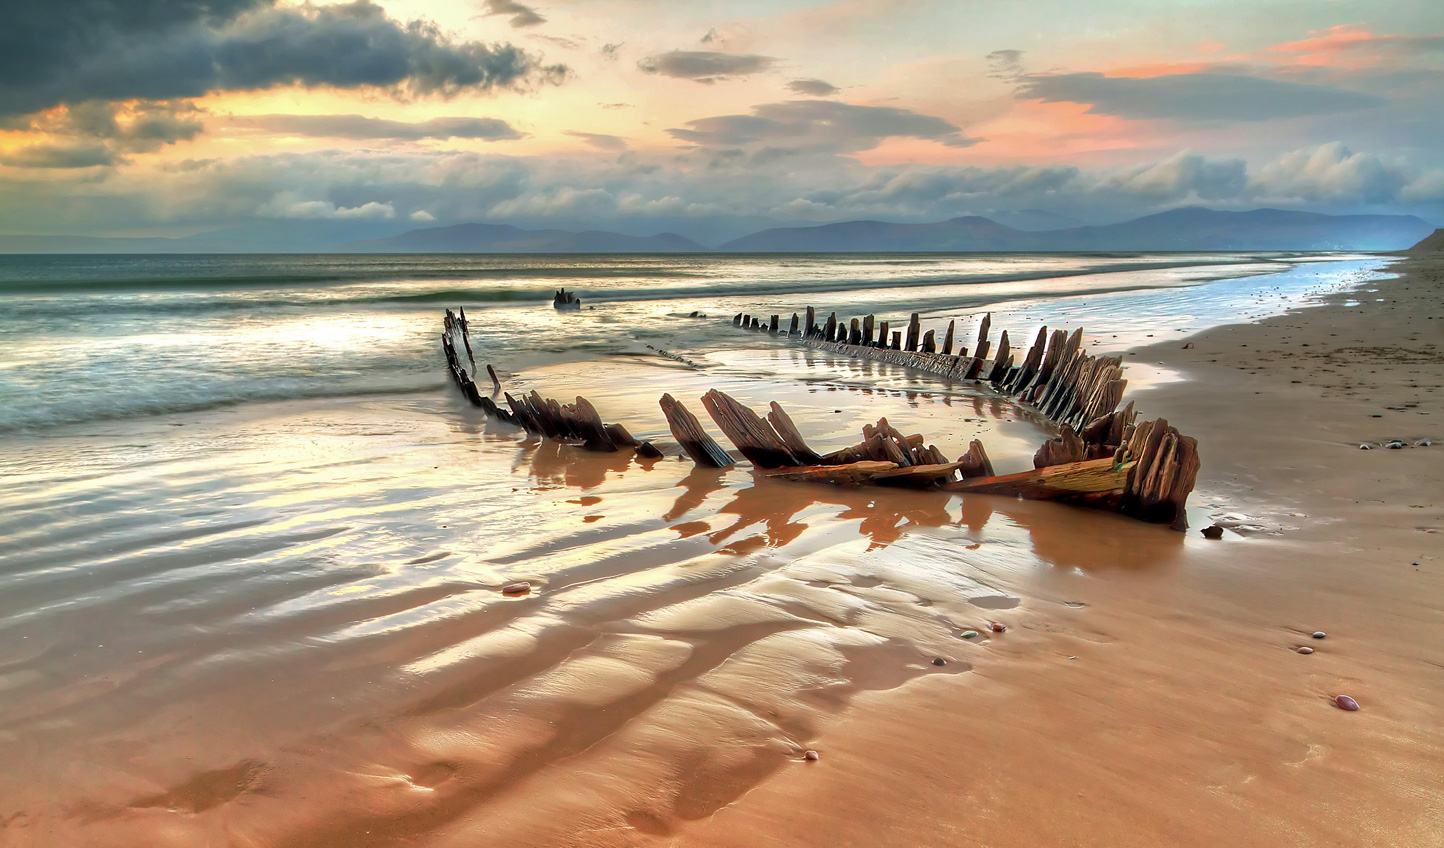 Pass by the eerie shipwrecks that litter the Skeleton Coast